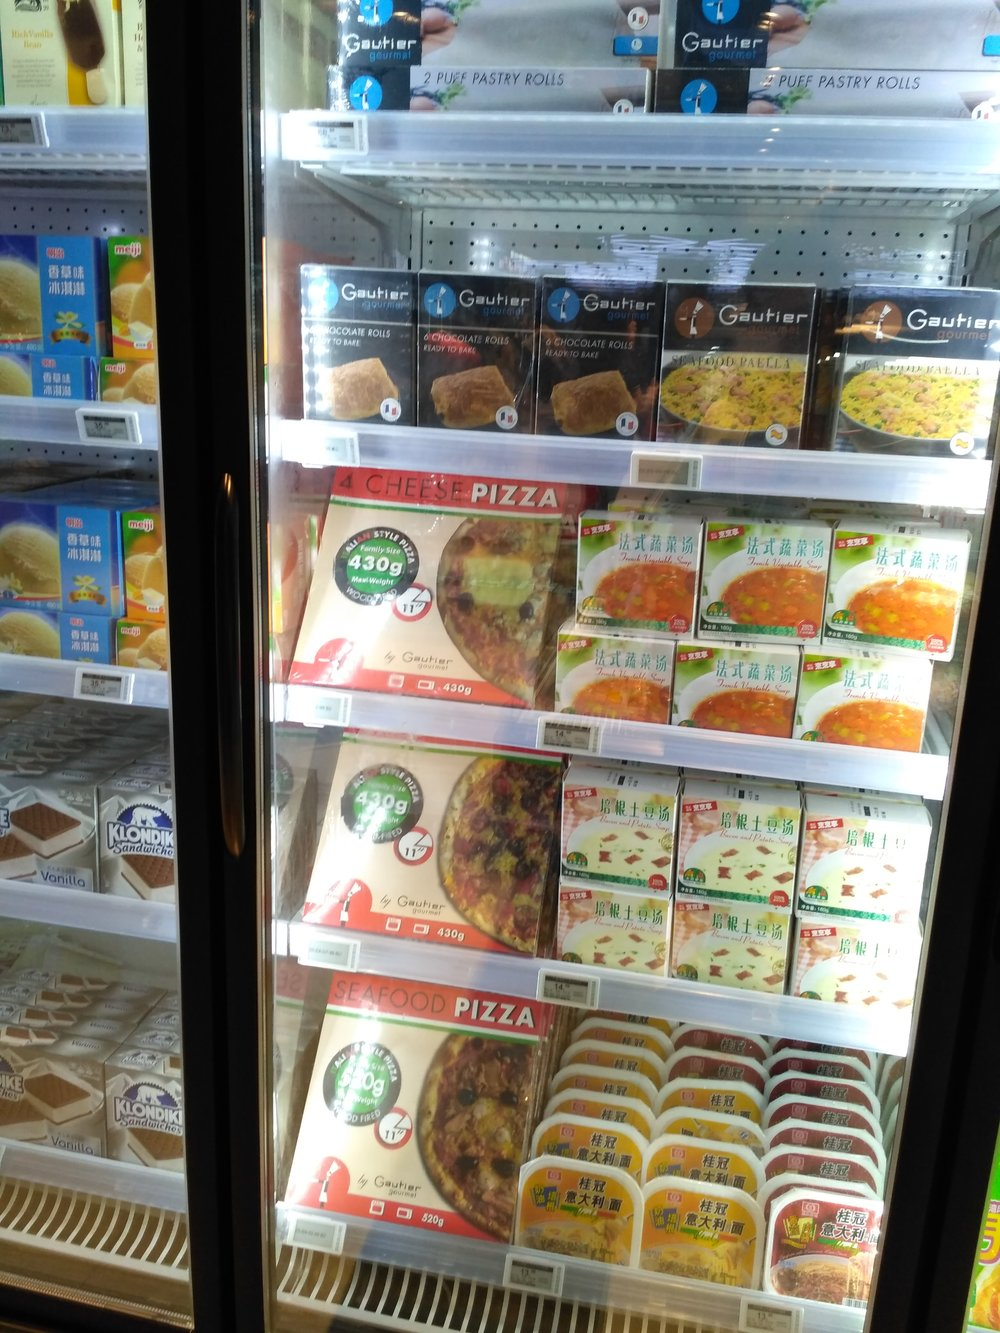 Freezer shelves fixed with digital price tags